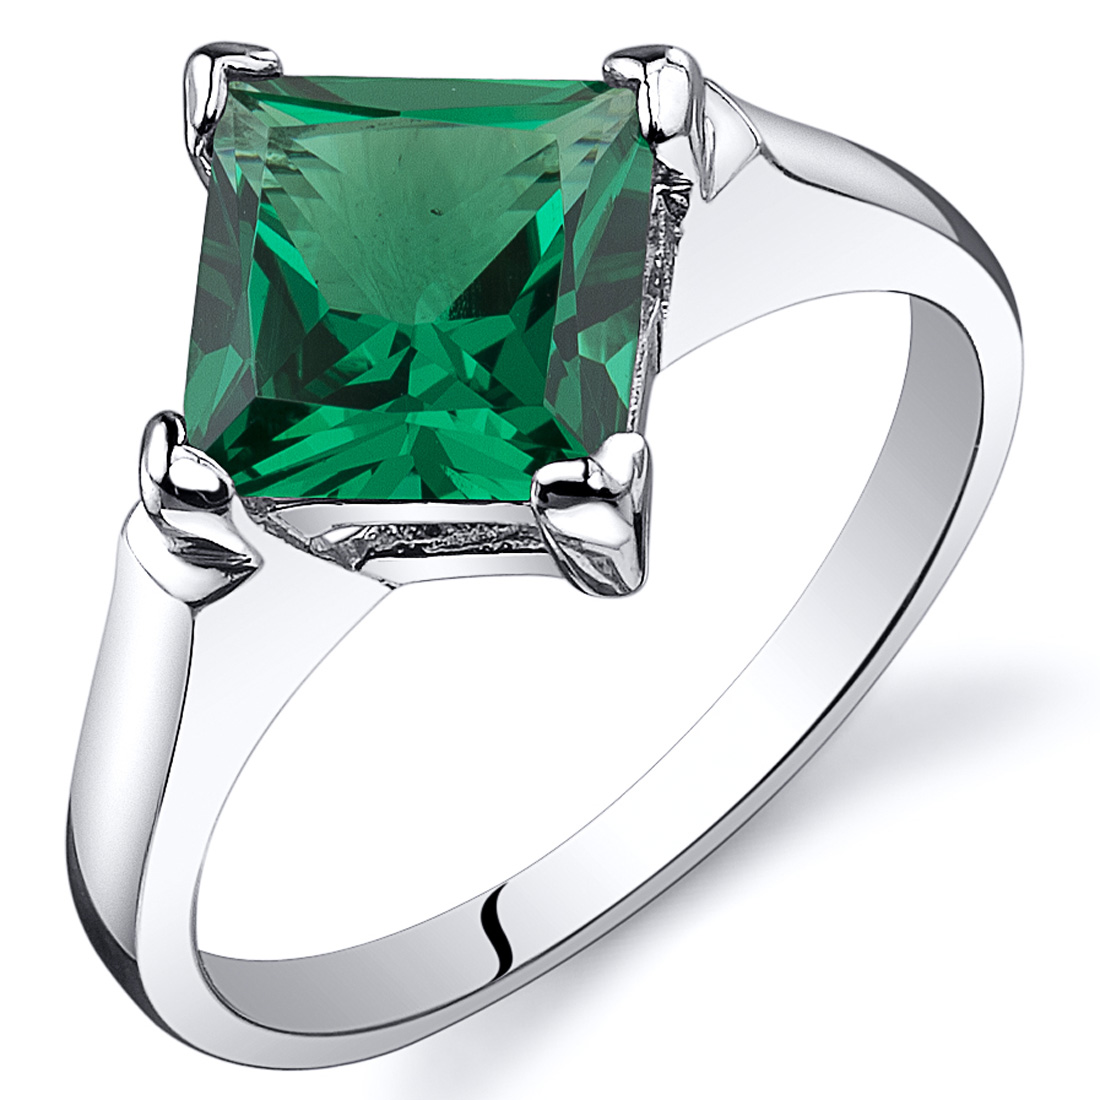 Striking 1.50 cts Amethyst Emerald Ring Sterling Silver Sizes 5 to 9 in Jewelry & Watches, Fine Jewelry, Fine Rings | eBay